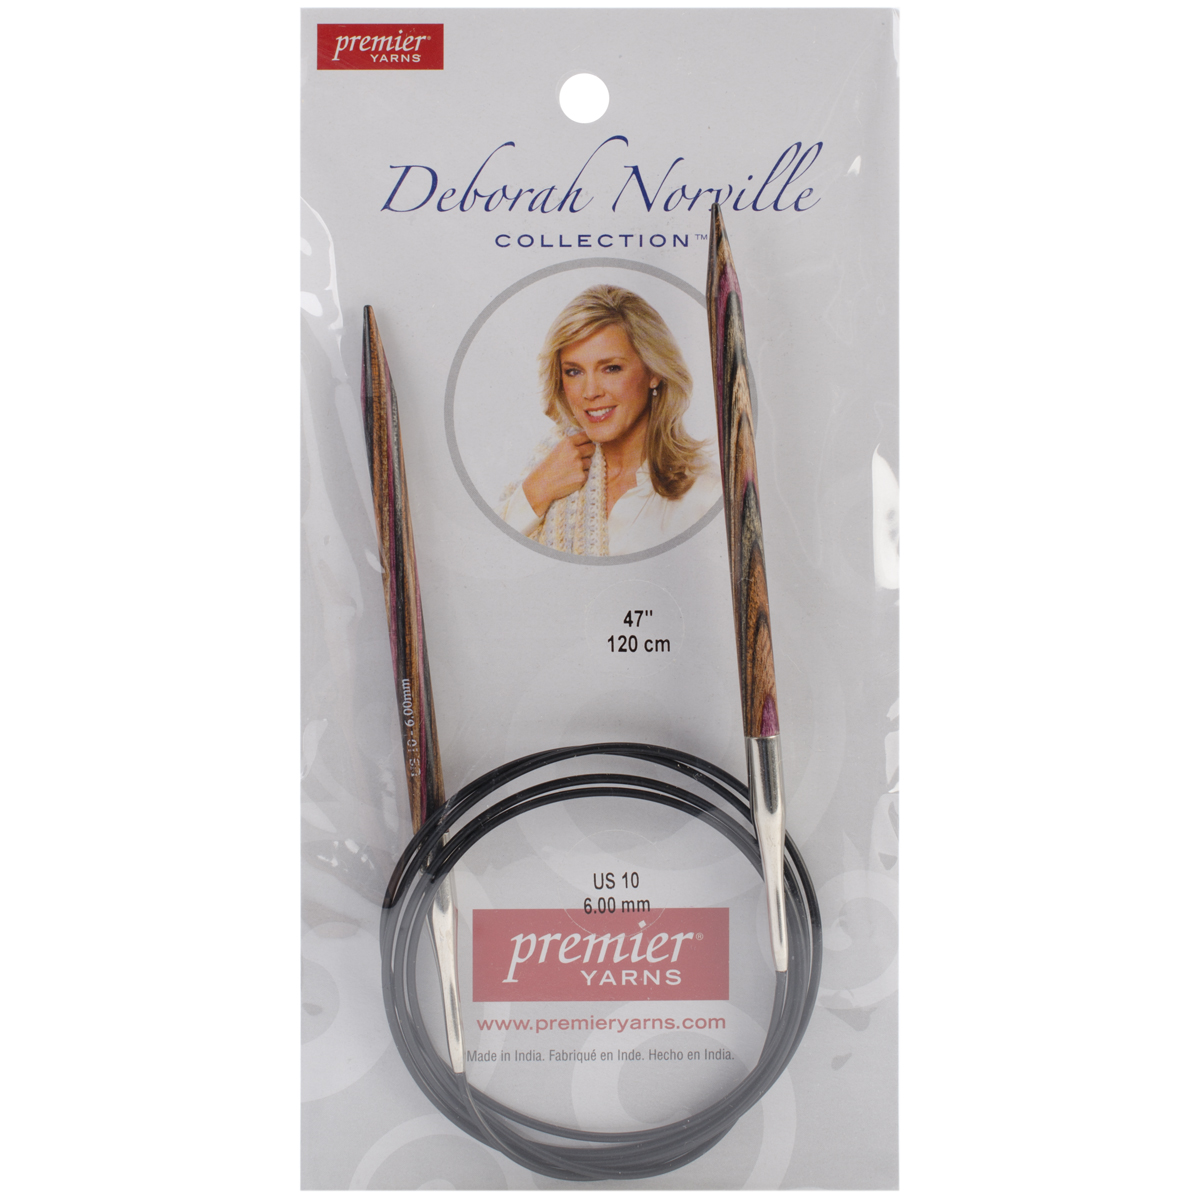 Deborah Norville Fixed Circular Needles 47\u0027\u0027 Size 10/6.0mm